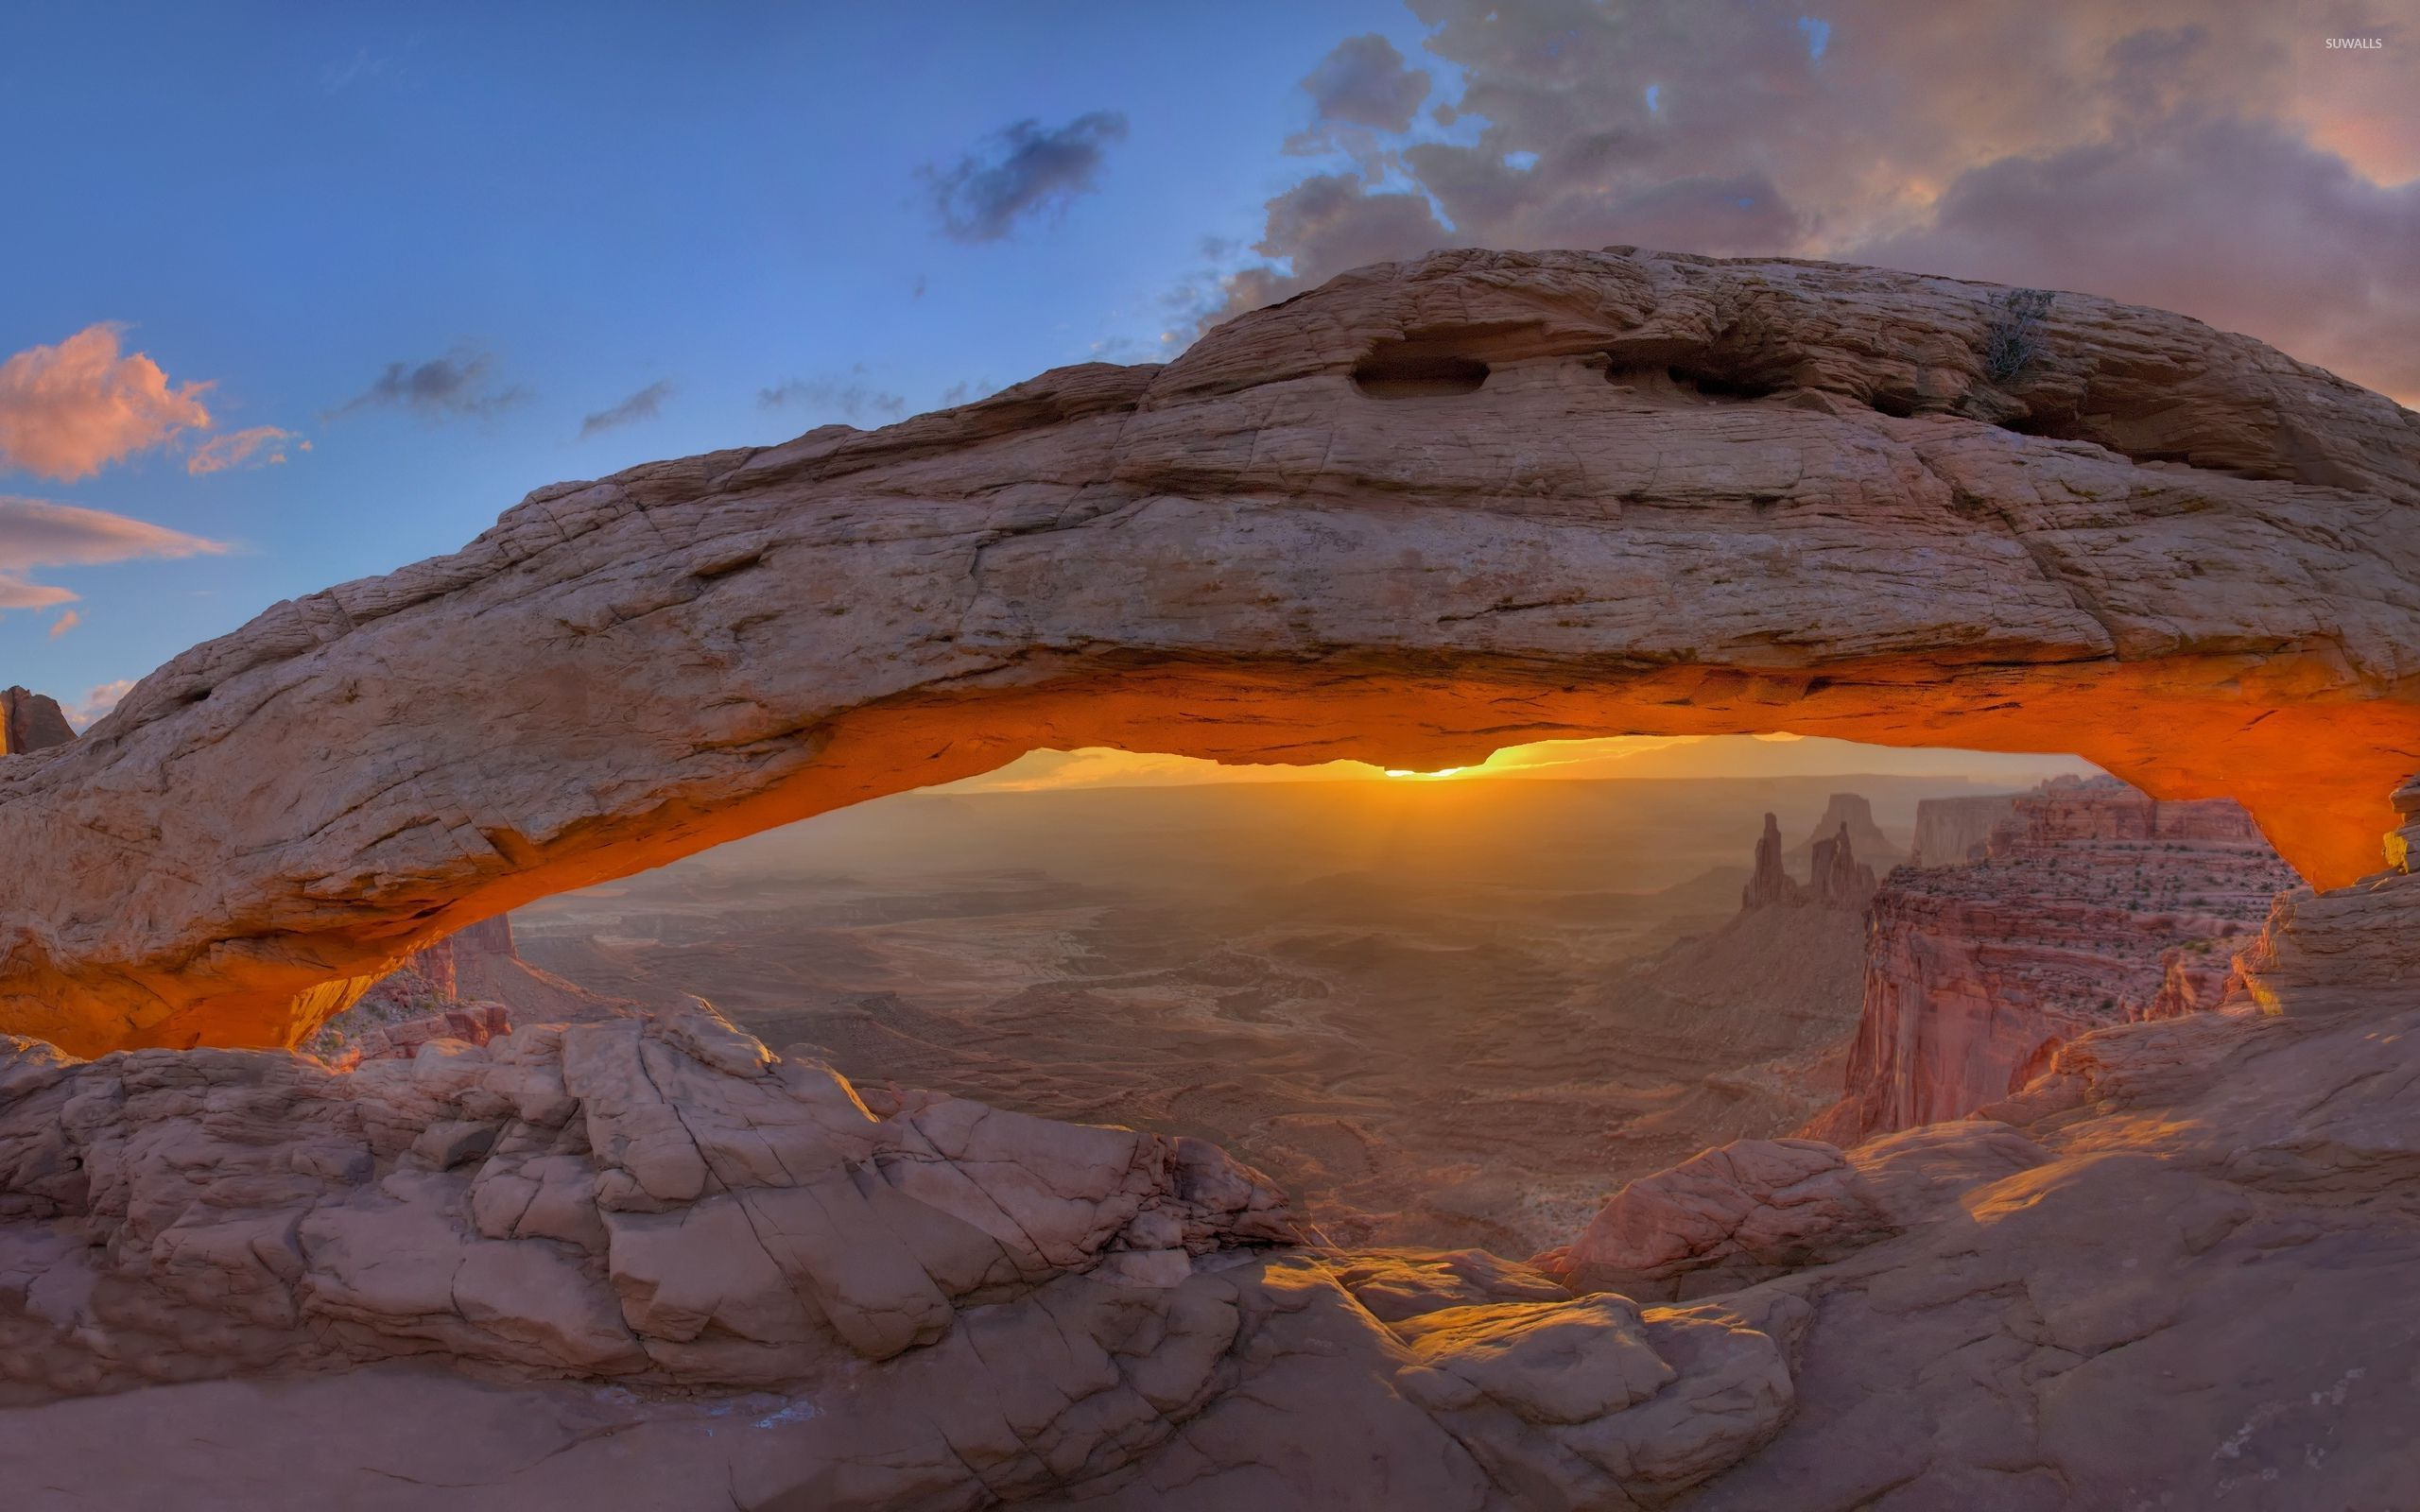 Bing Fall Desktop Wallpaper Mesa Arch Wallpaper Nature Wallpapers 32959